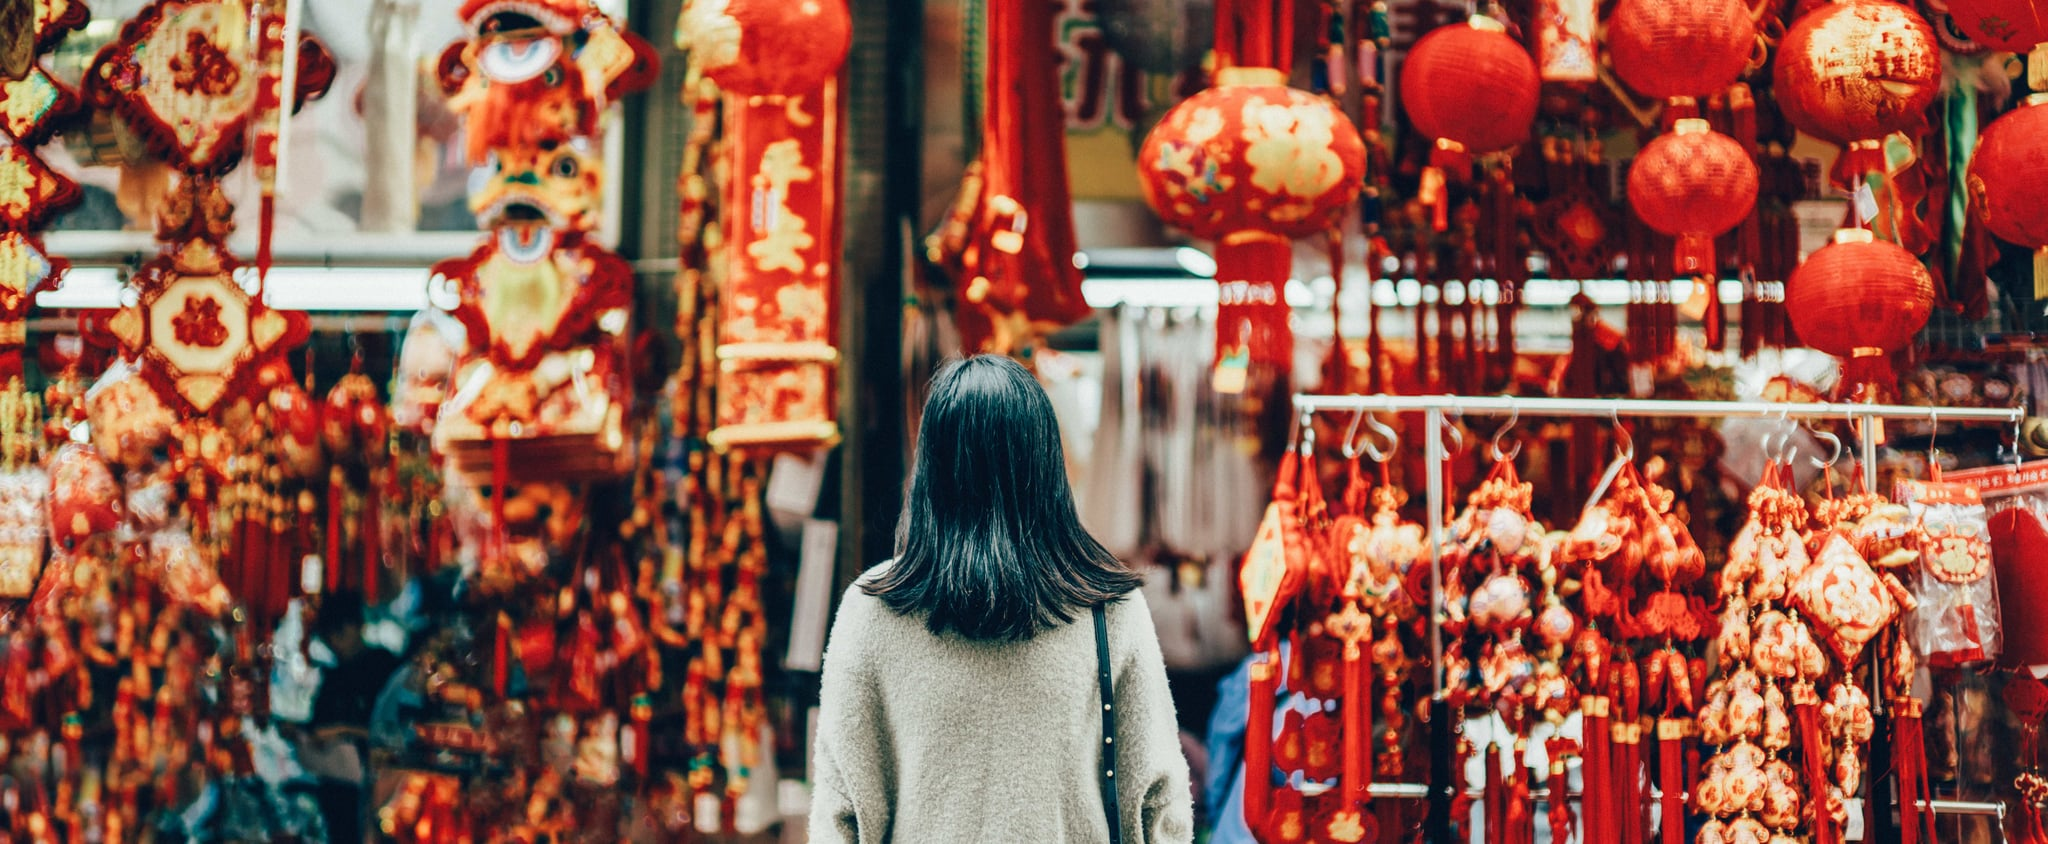 Celebrating Chinese New Year as an Introvert